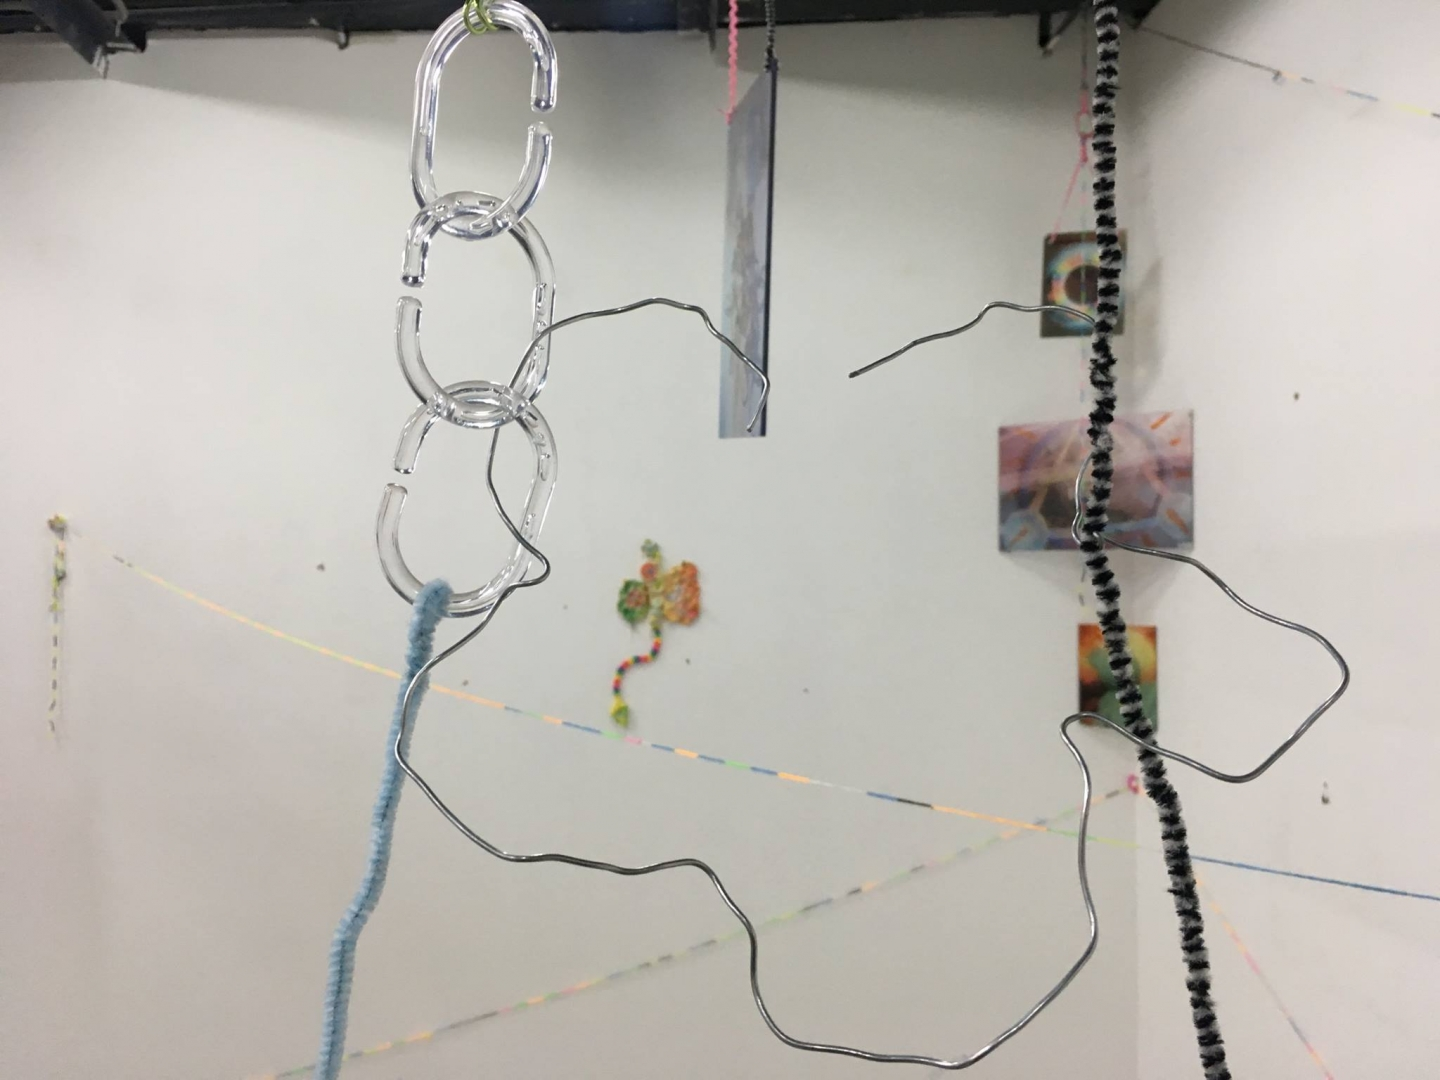 Liza Chukhlantseva's solo show You are Like Me in Youth Only Better, ISSMAG gallery, 2017